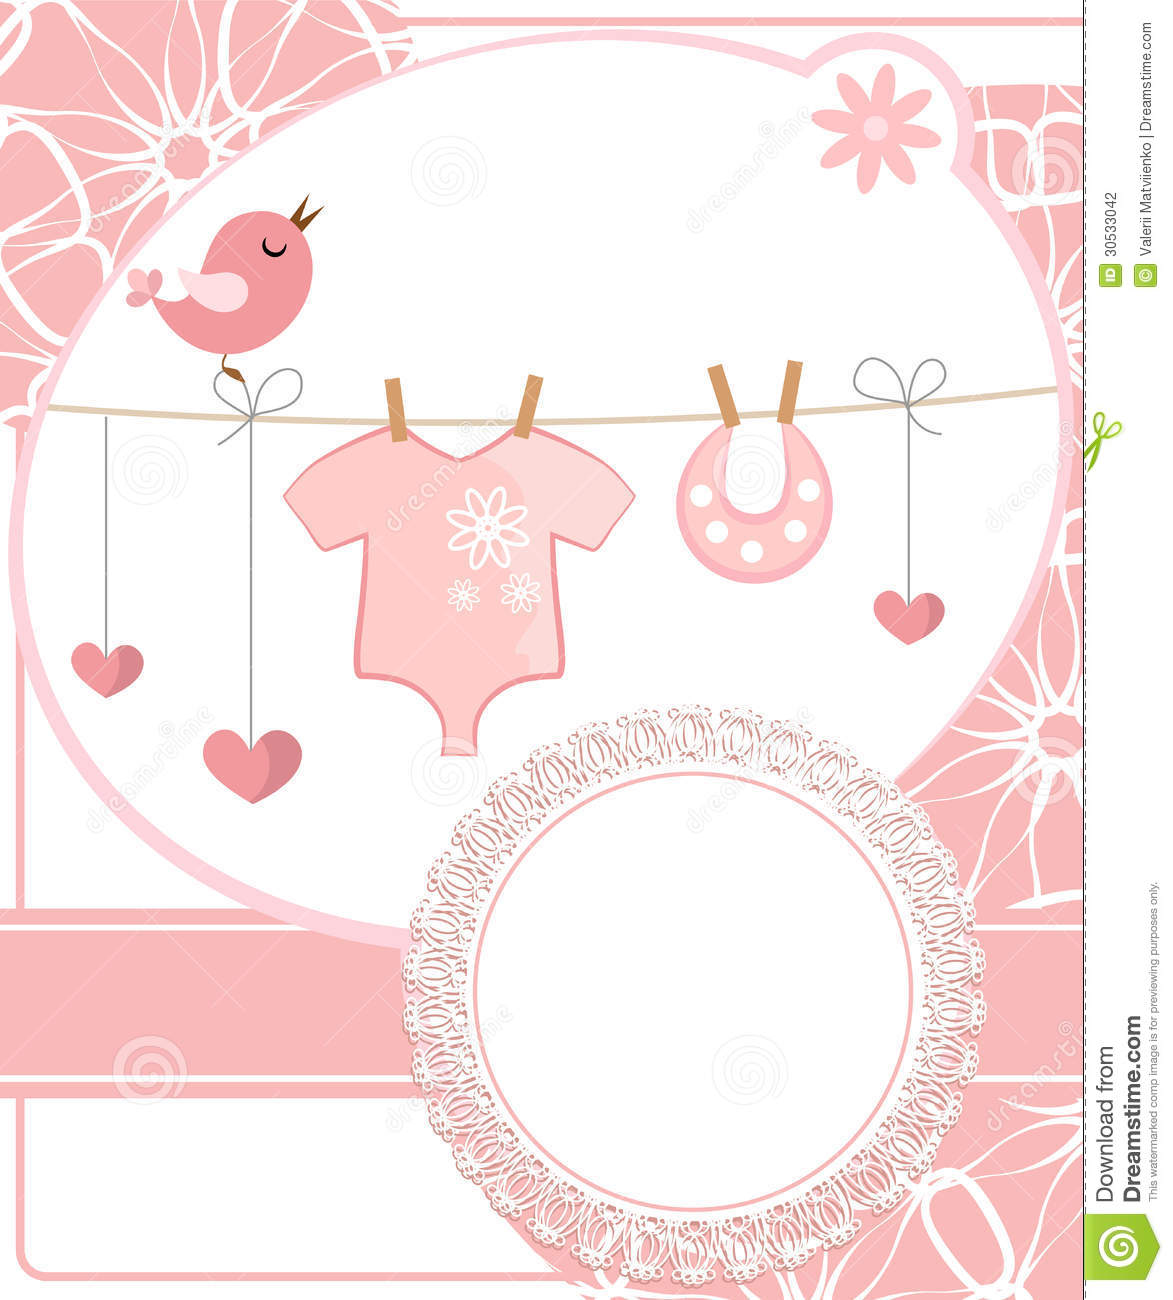 How to scrapbook for baby girl - Cute Scrapbook For Girl With Baby Elements